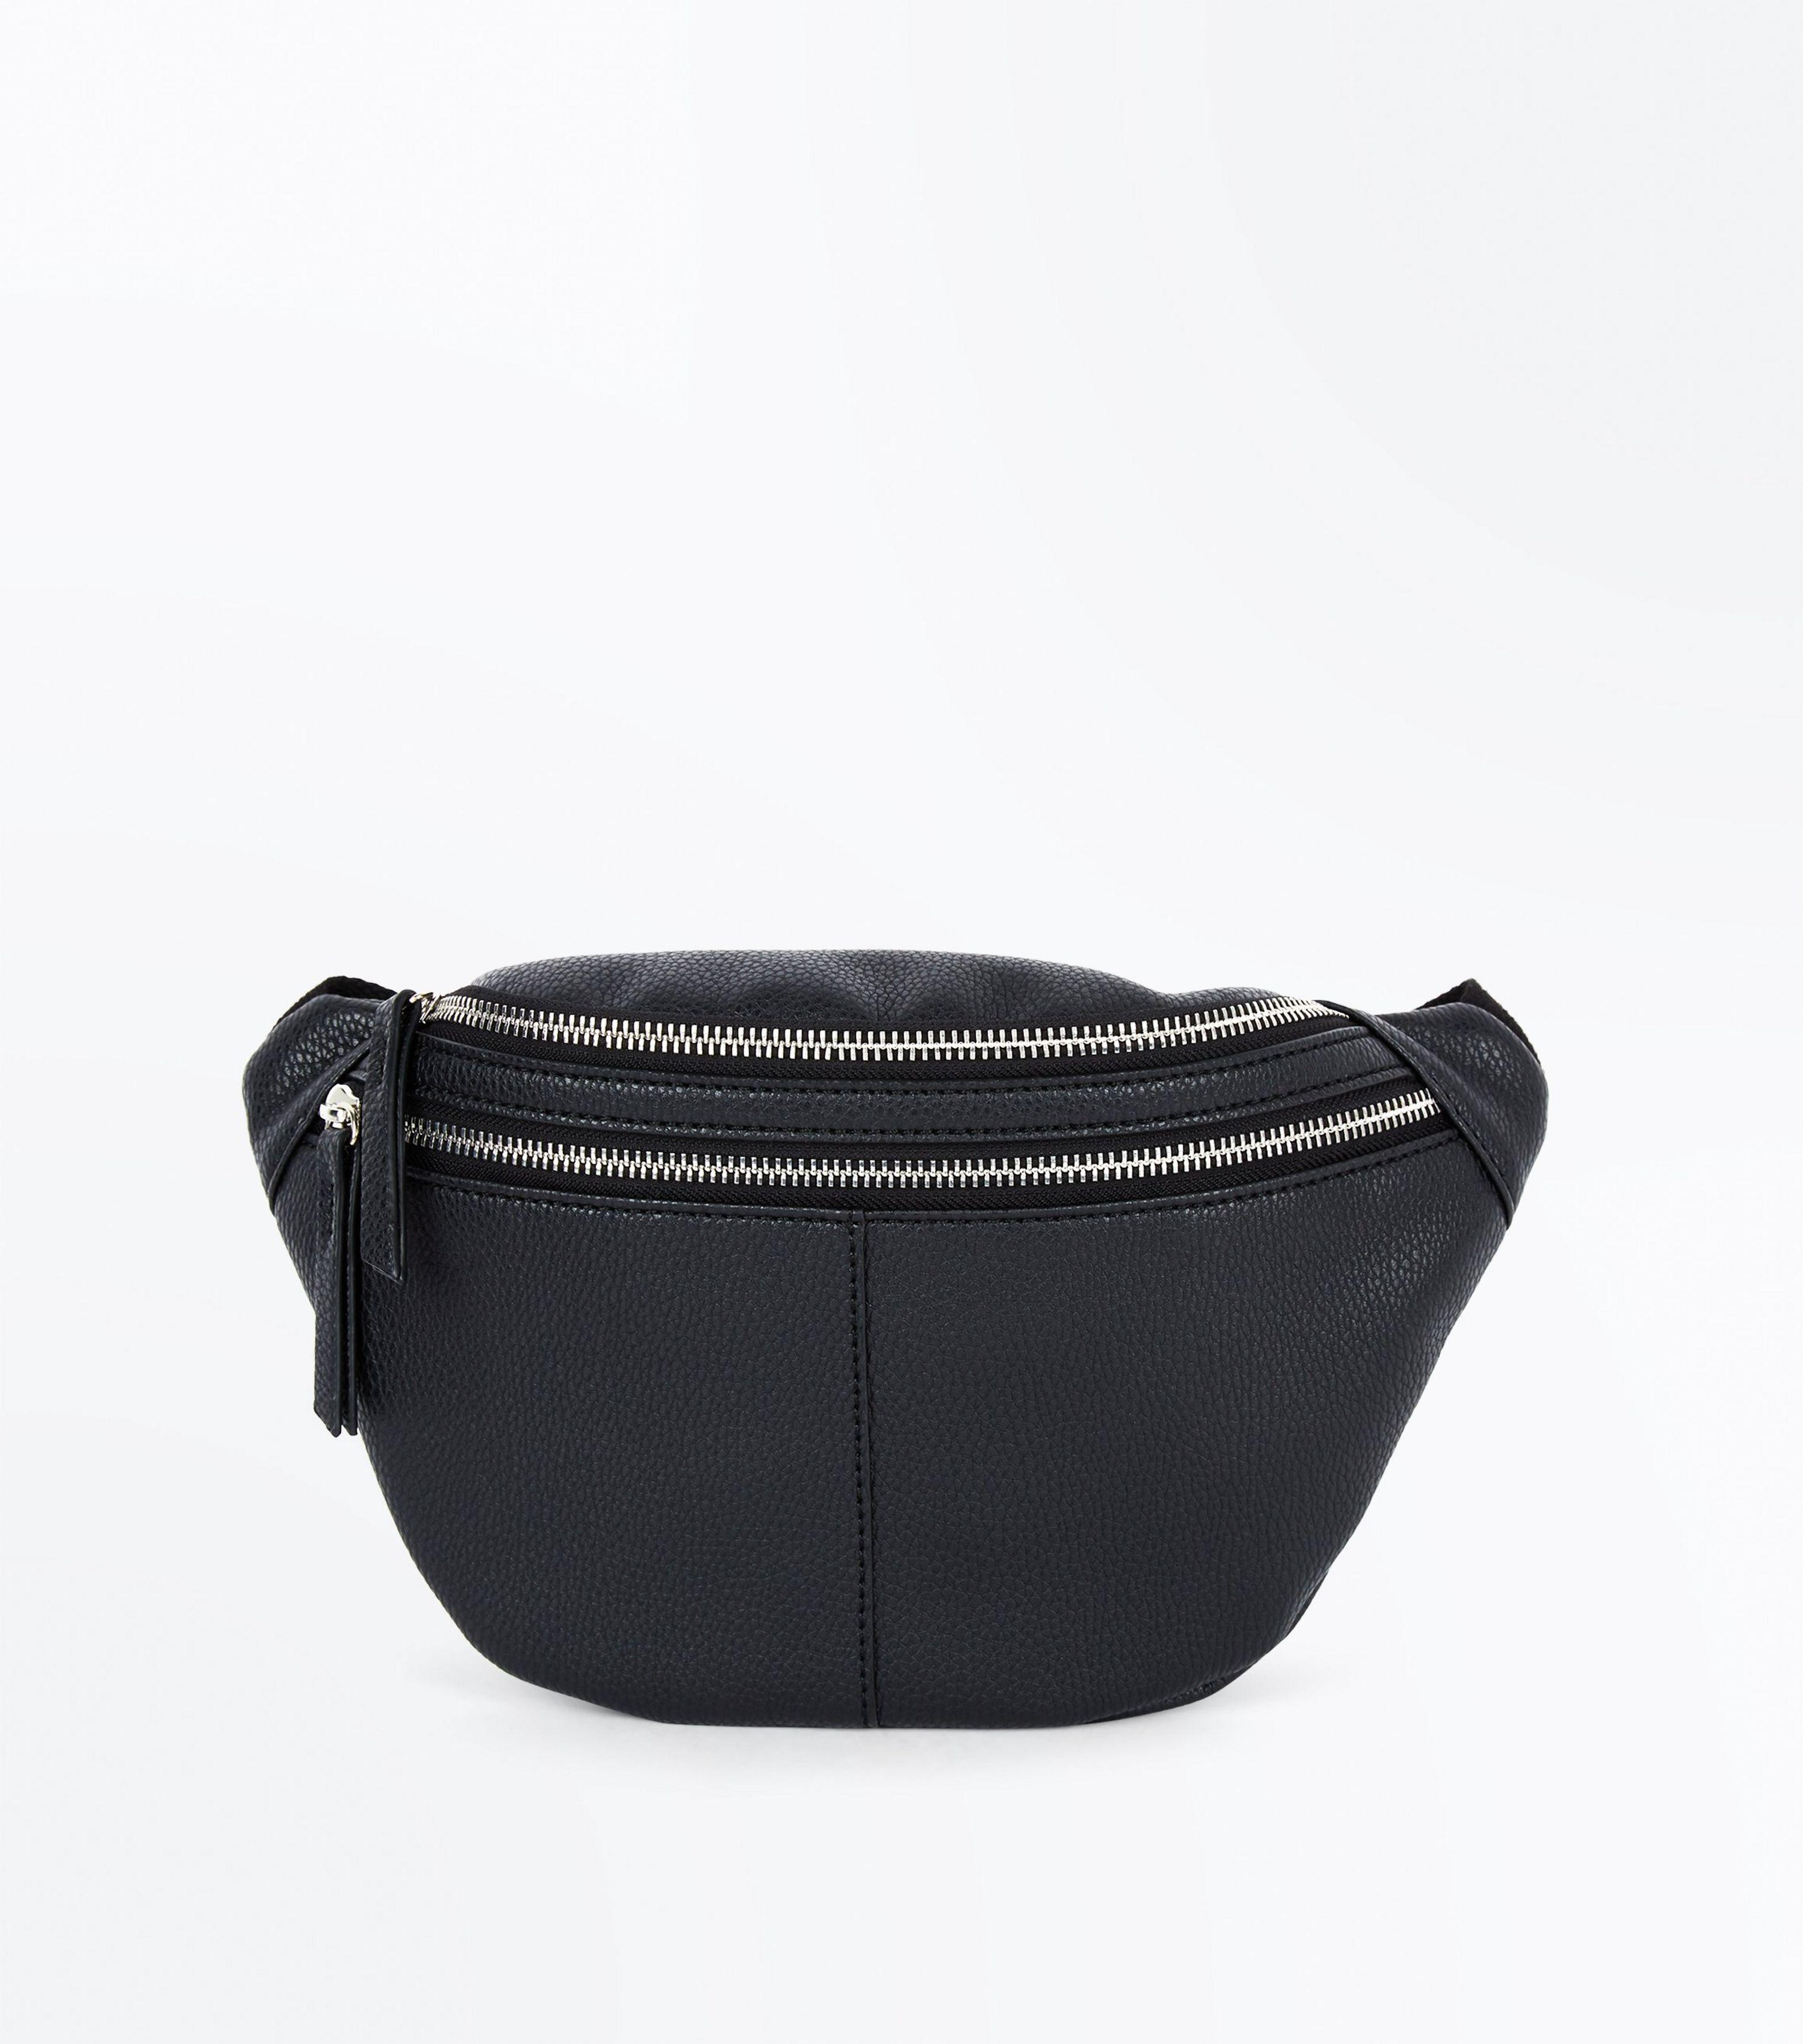 New Look Black Double Pocket Bum Bag in Black - Lyst 853a7a904d